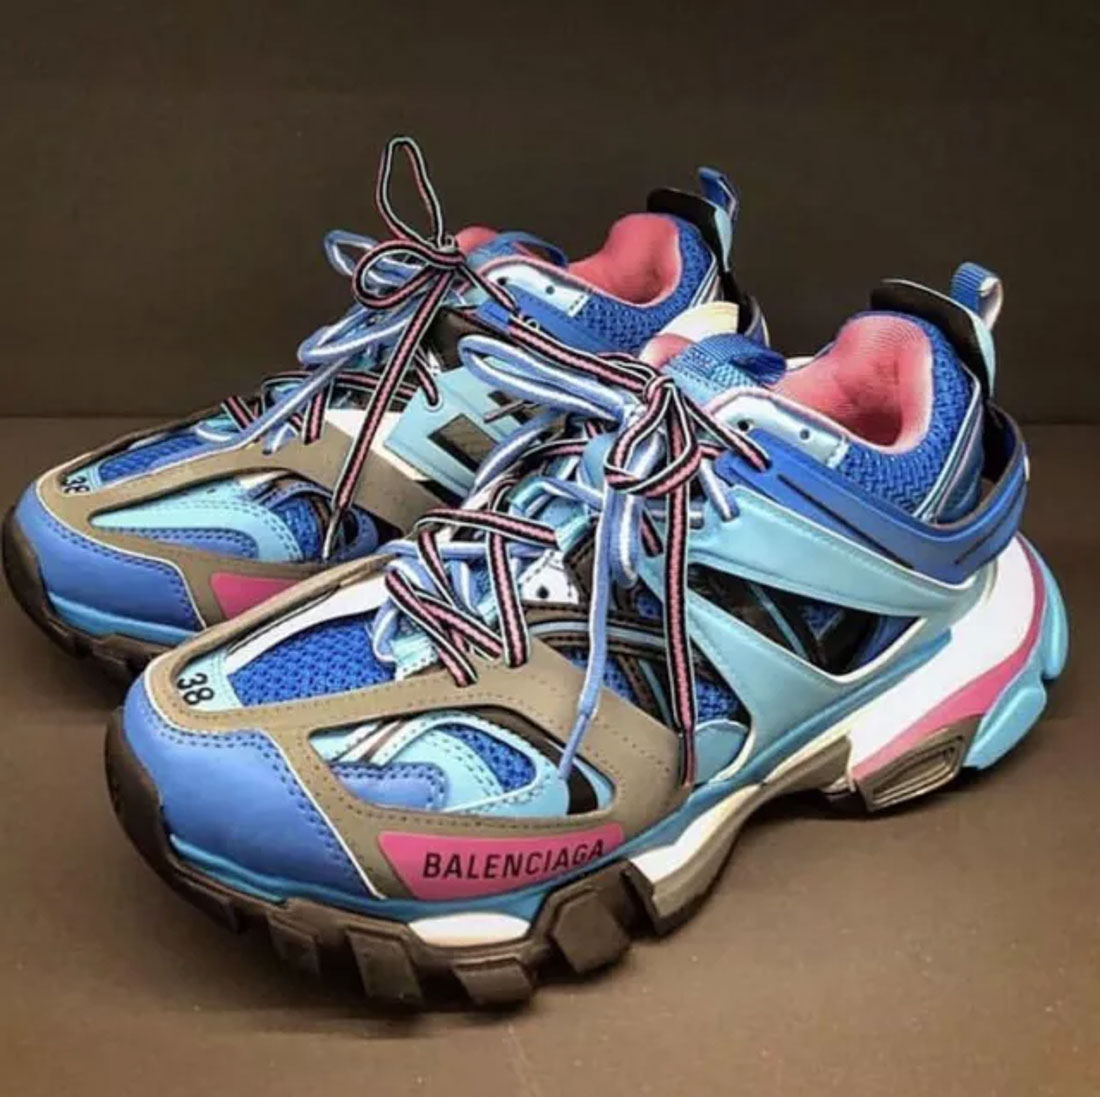 Balenciaga Men's 542023W1Gb54162 Light Blue Leather Sneakers In 4162 Blue